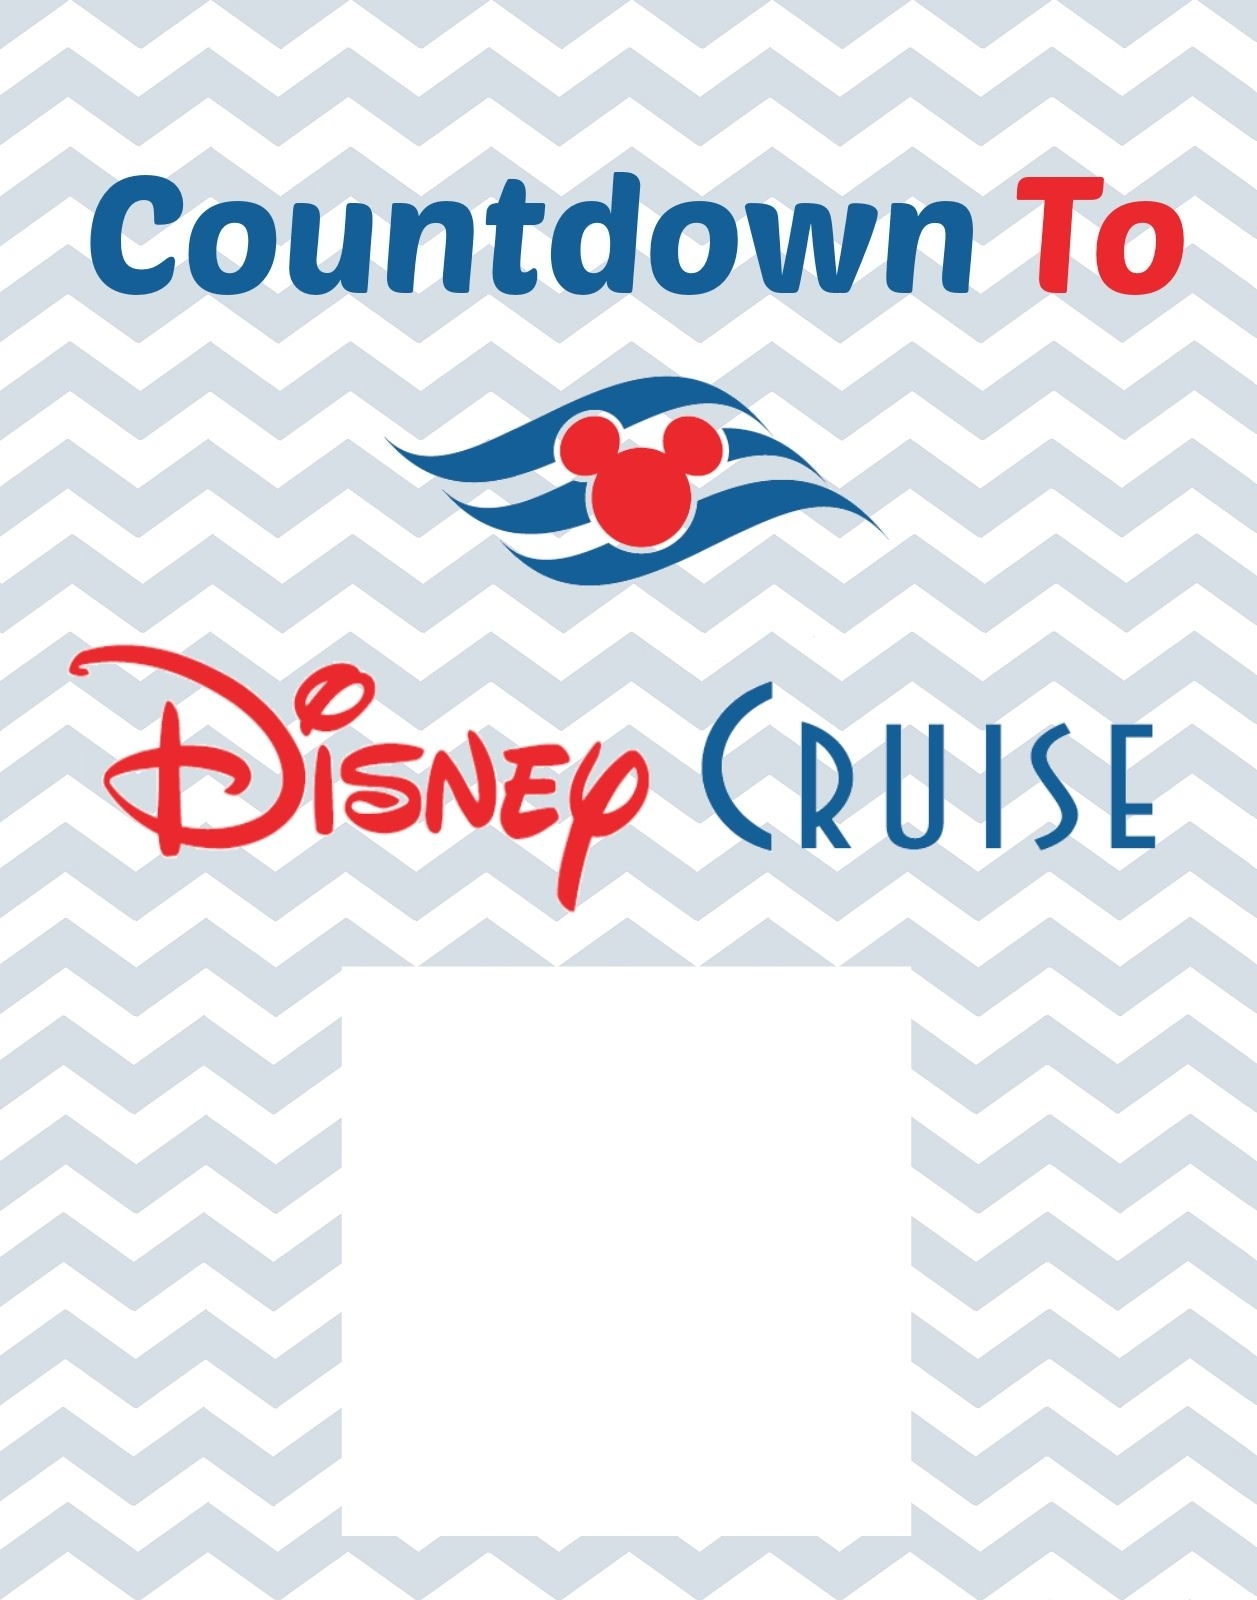 Disney Cruise Countdown Printable Free | Disney Dream Cruise pertaining to Count Diwn Calendar Fir Disney Cruise